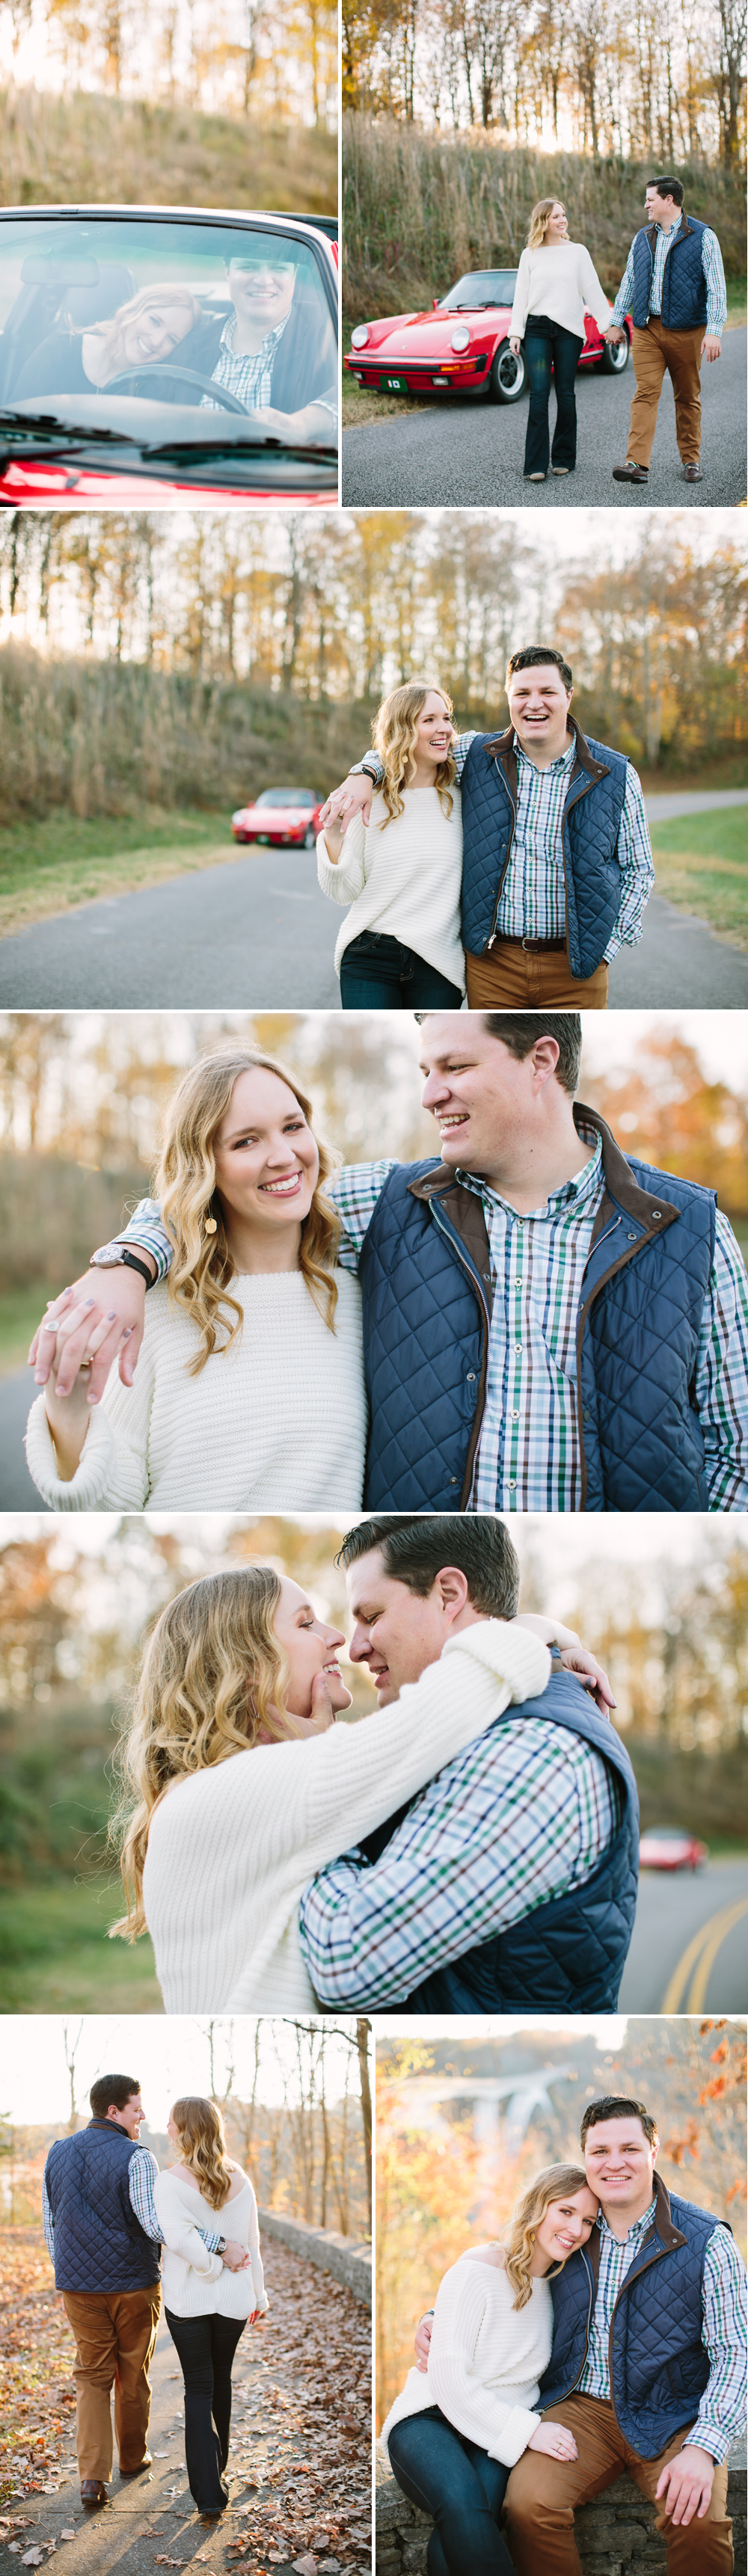 Nashville_Engagement_Photography_2.jpg